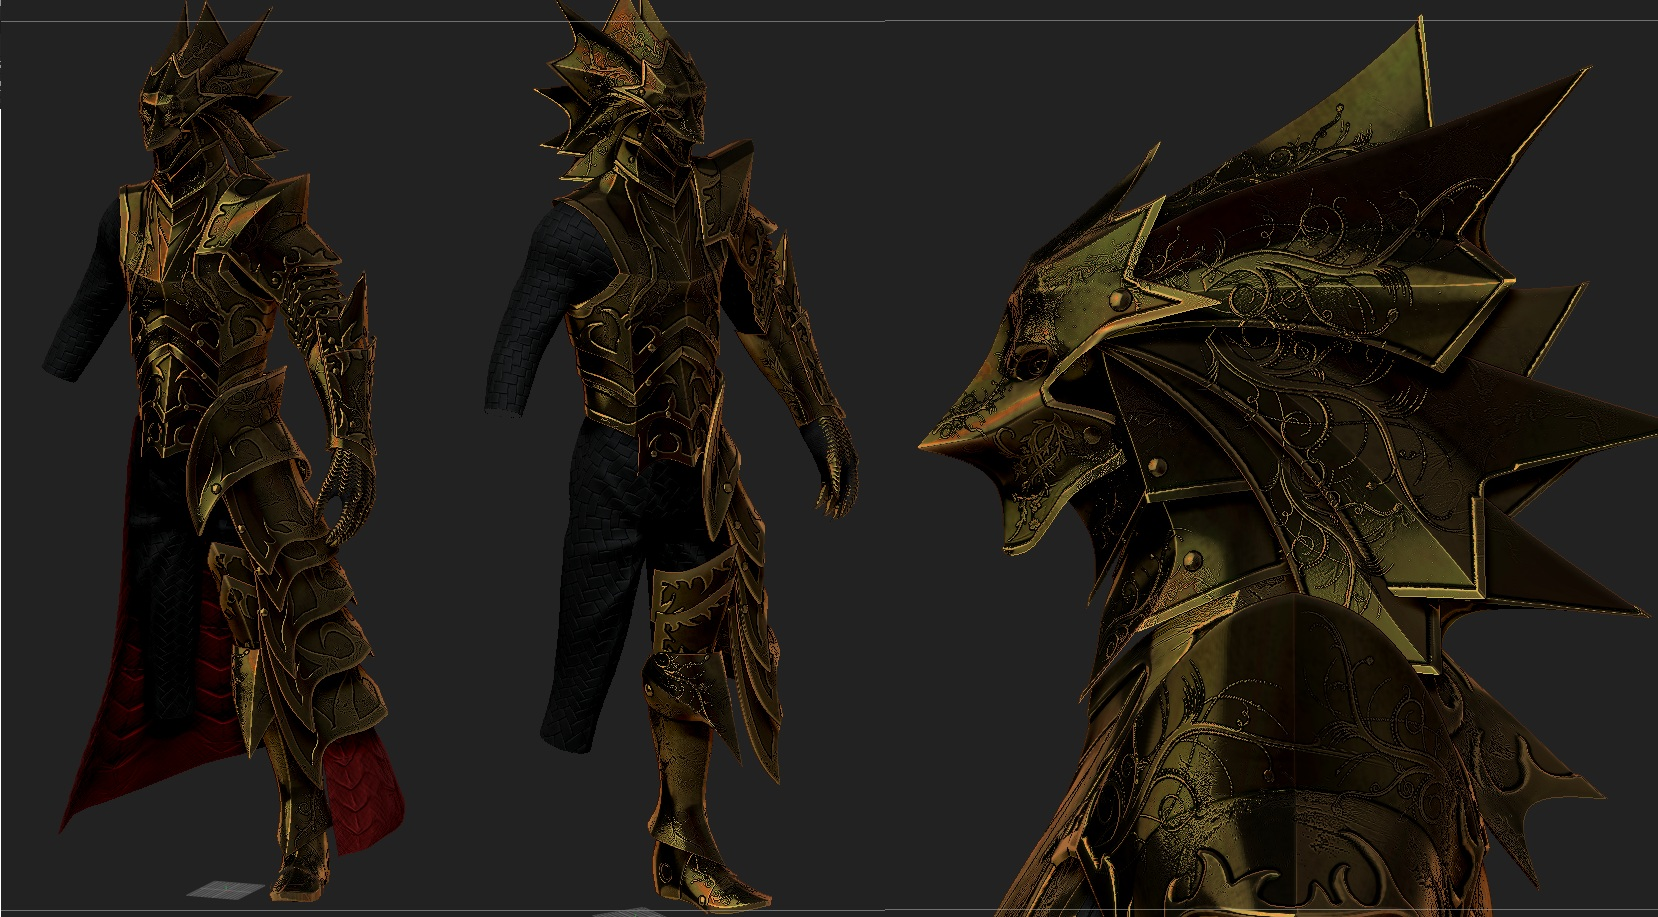 KNight of thorns Gold Armor  for skyrim by Zerofrust